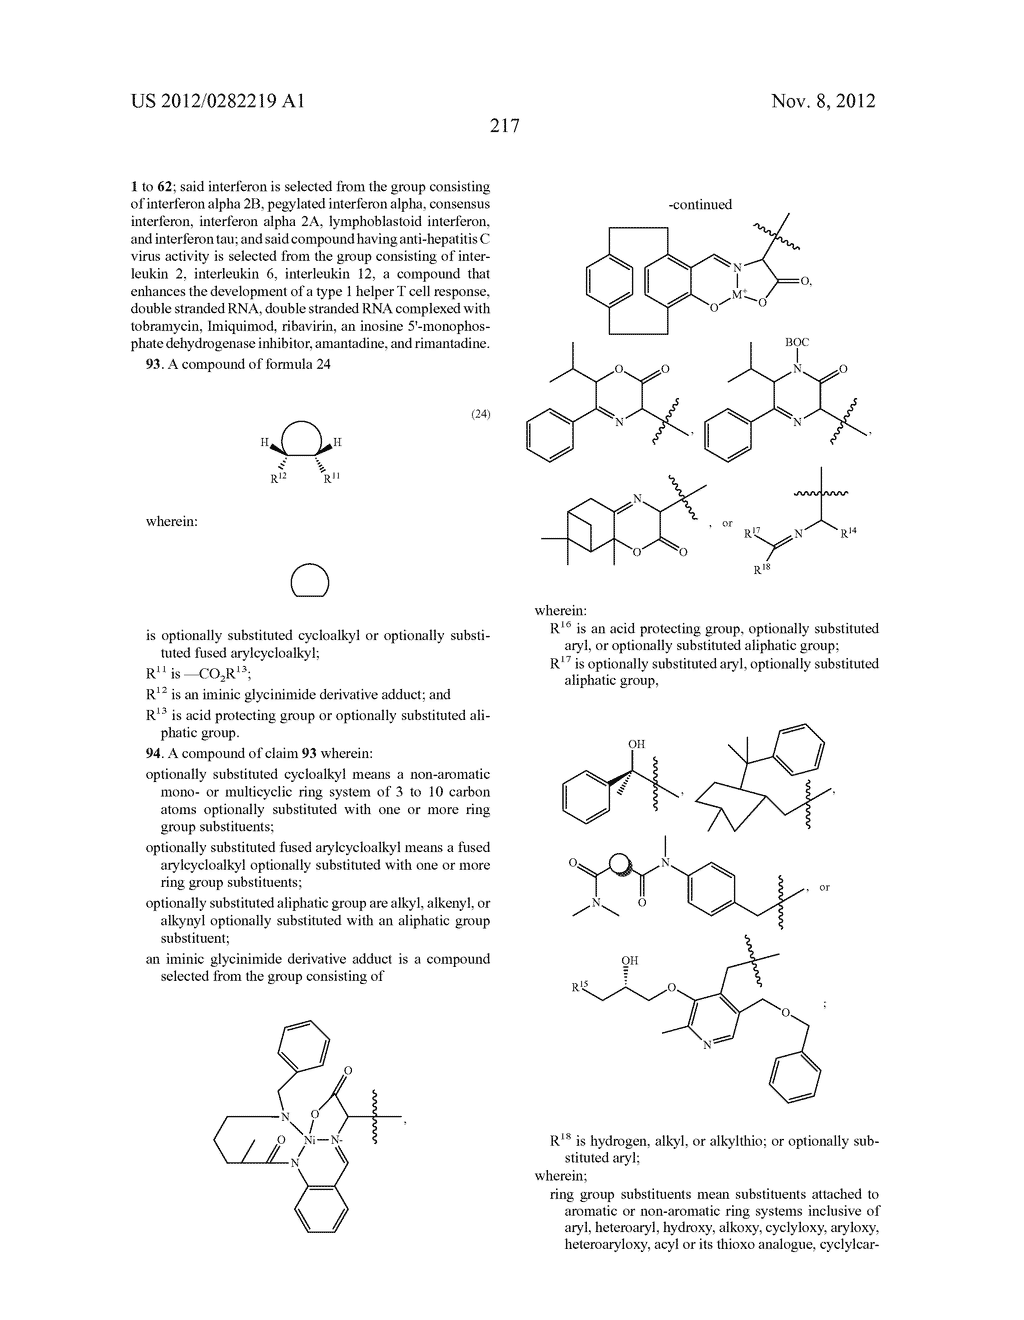 PEPTIDOMIMETIC PROTEASE INHIBITORS - diagram, schematic, and image 232